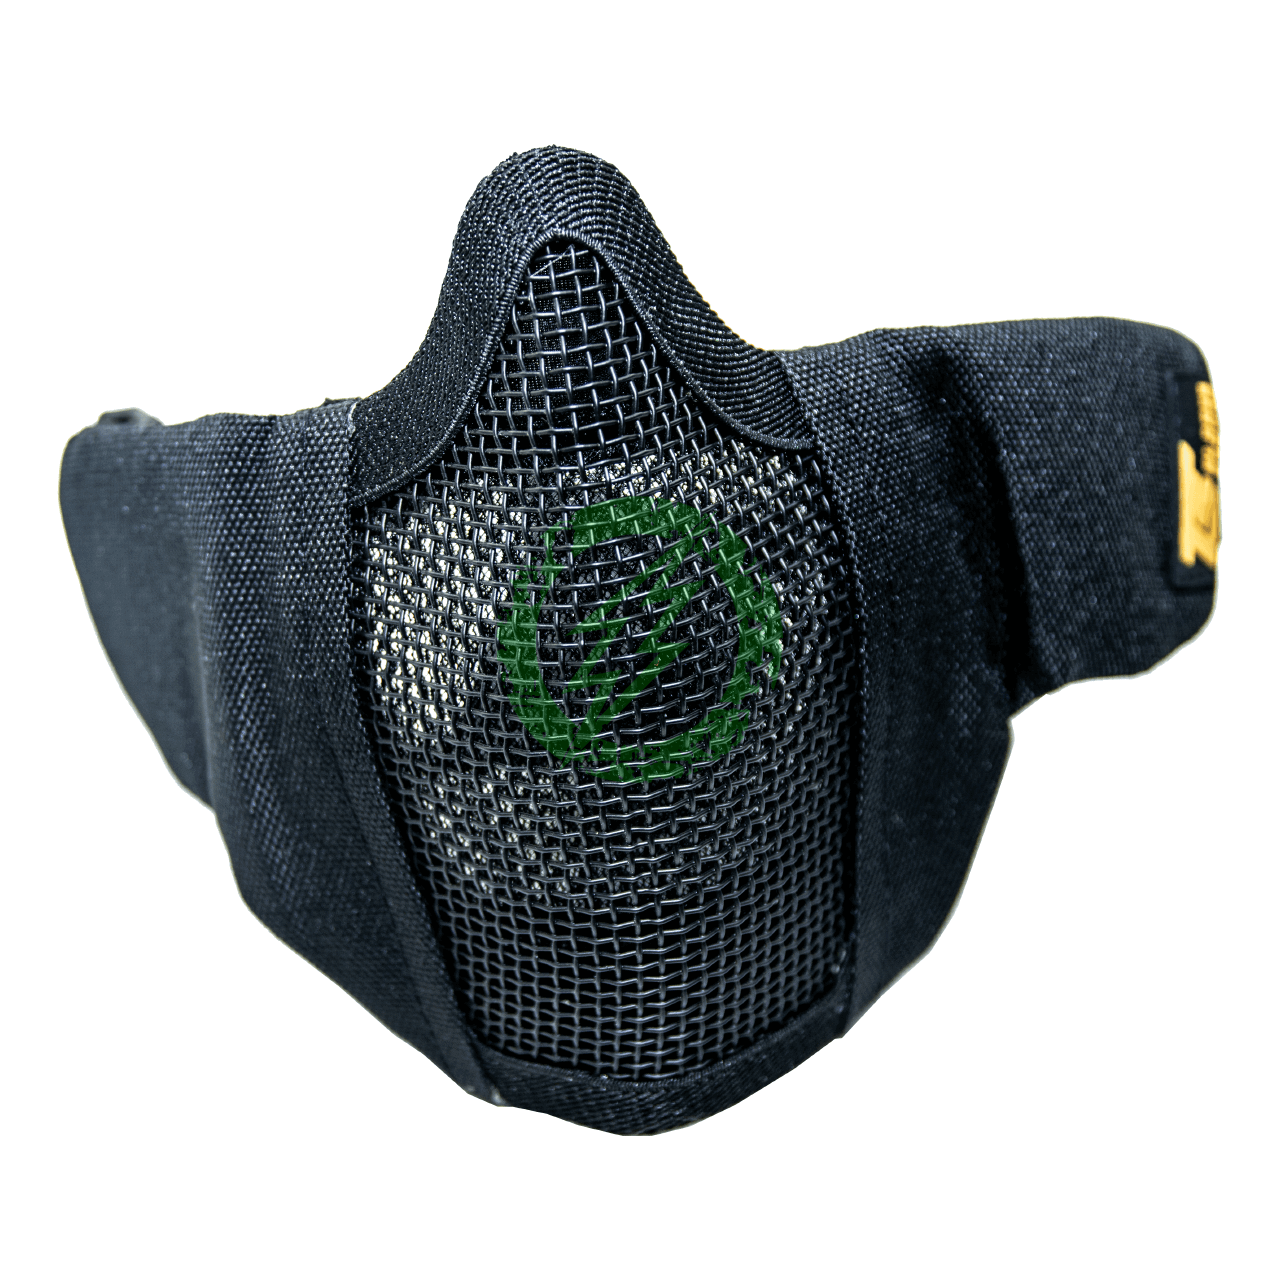 TS Blades Mesh Padded Lower Half Face Mask with Filter Storage black